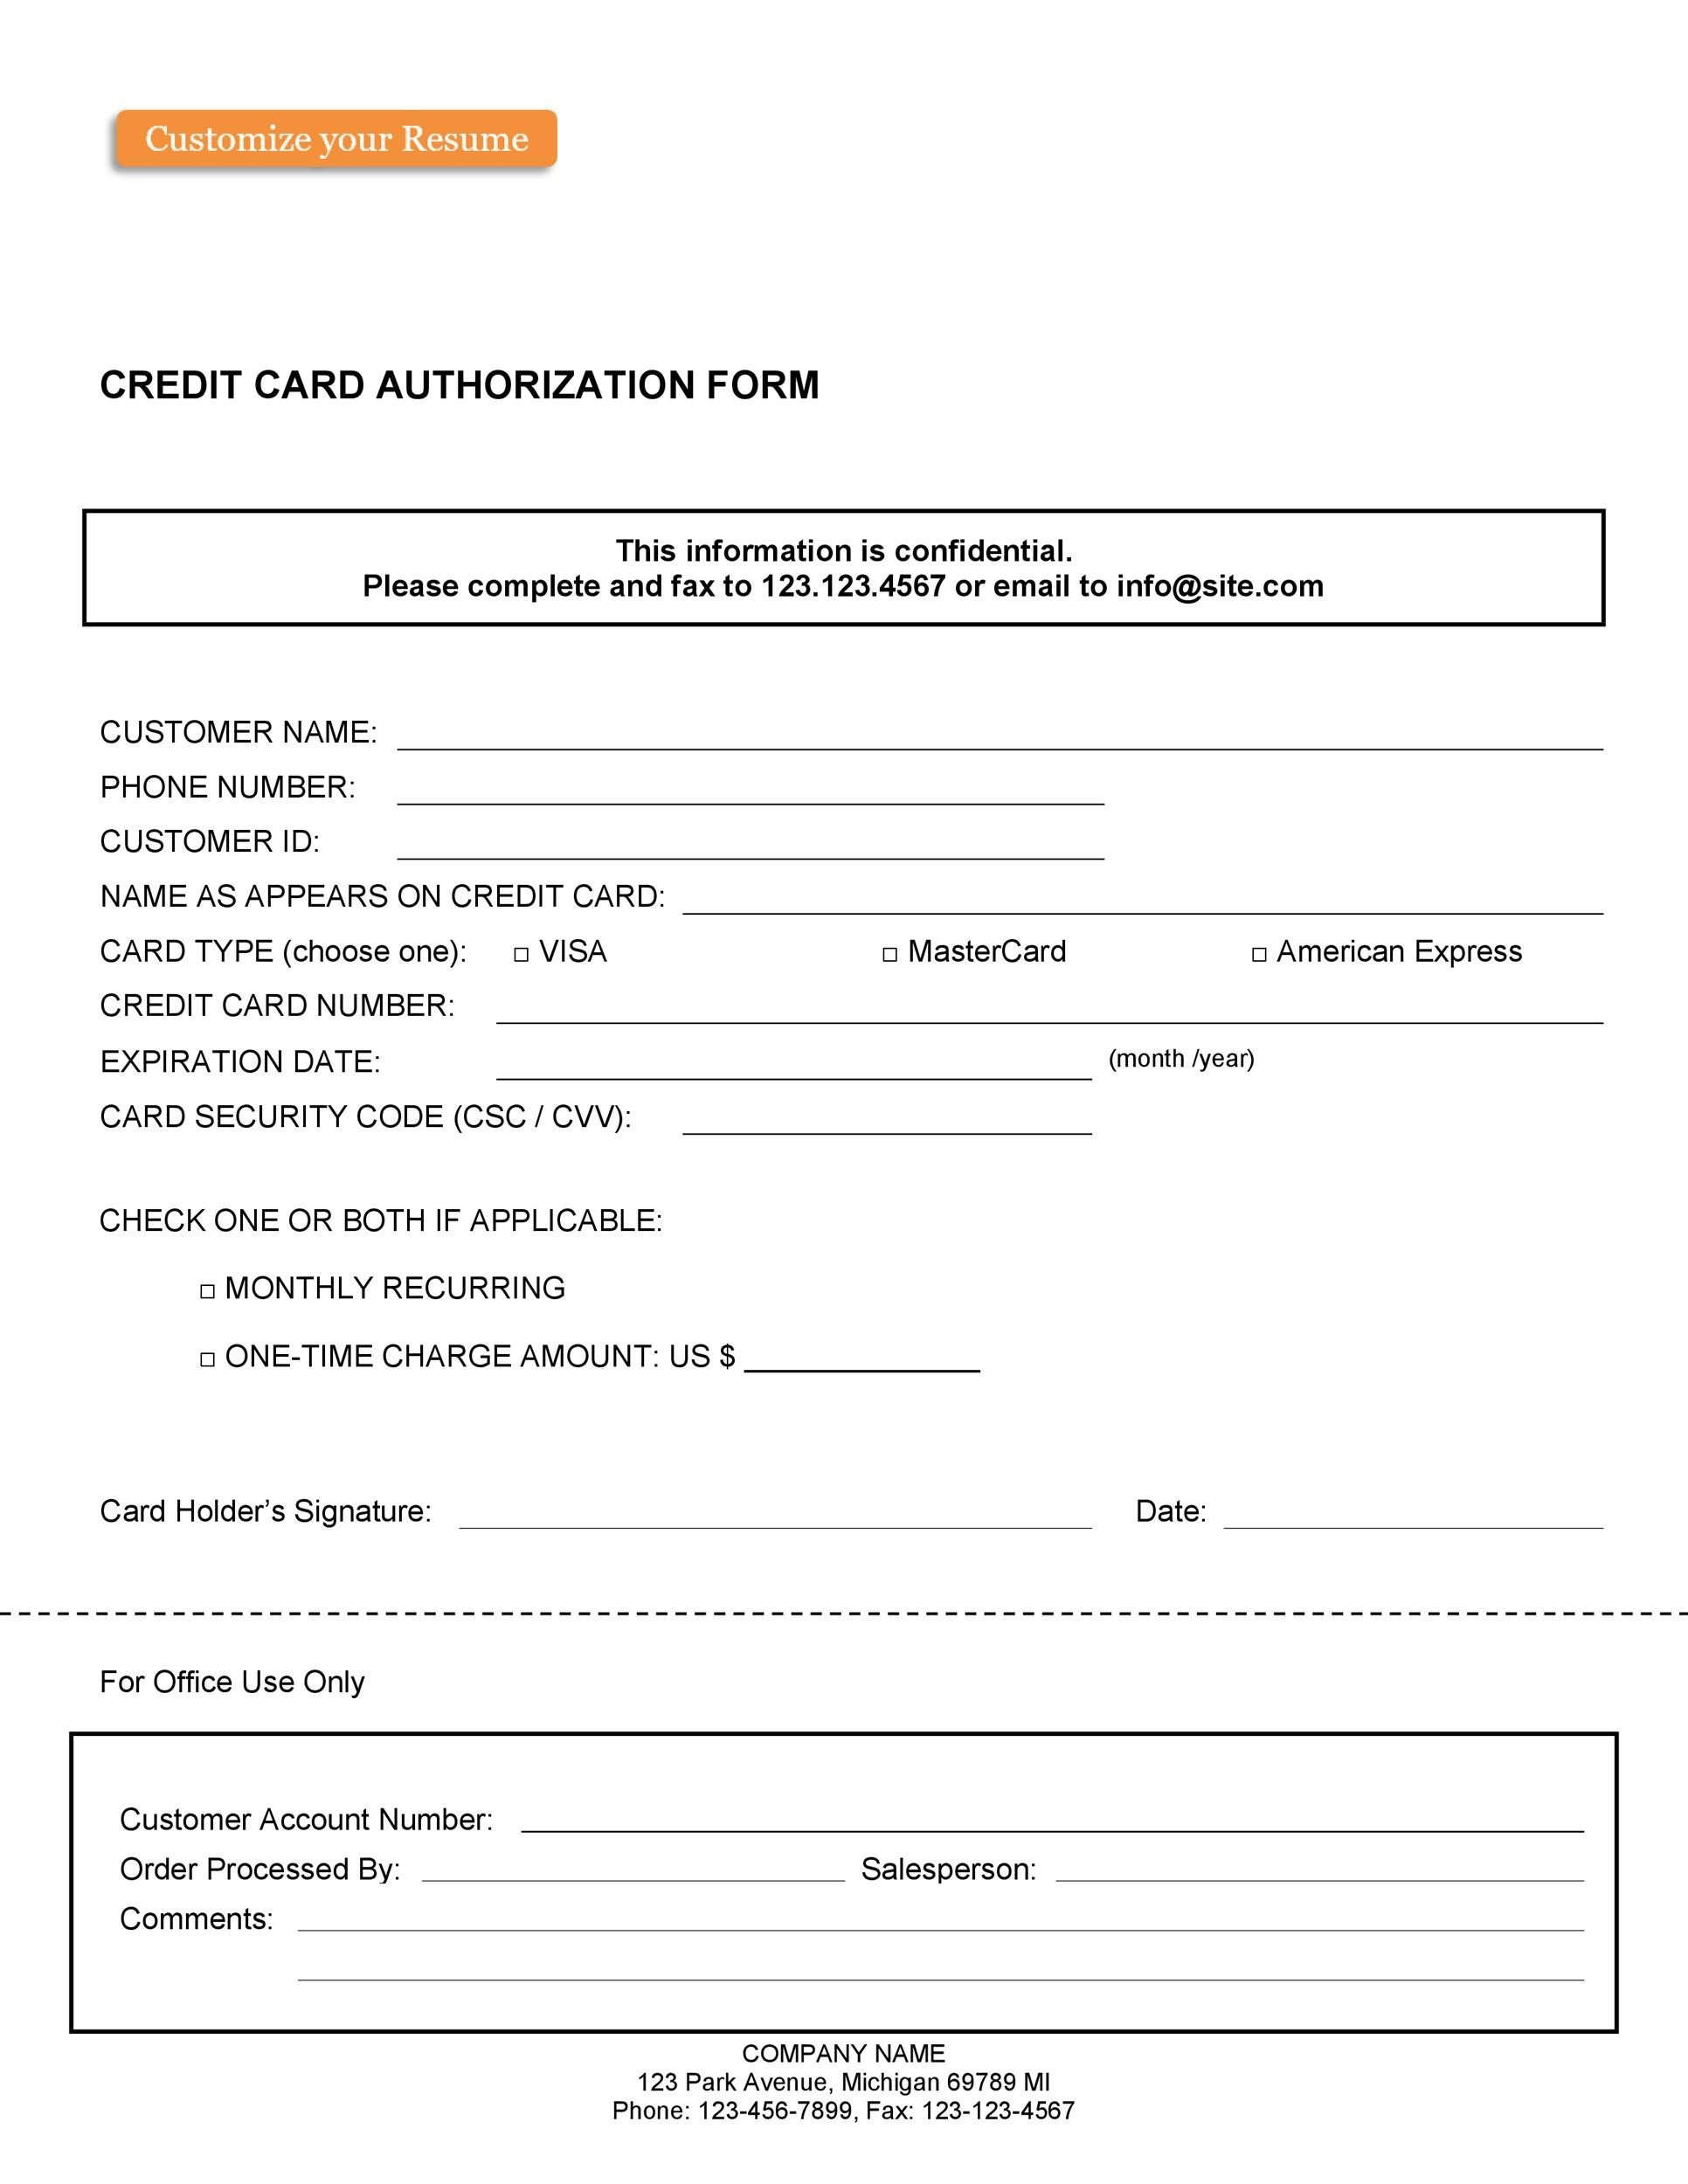 Free credit card authorization form template 07